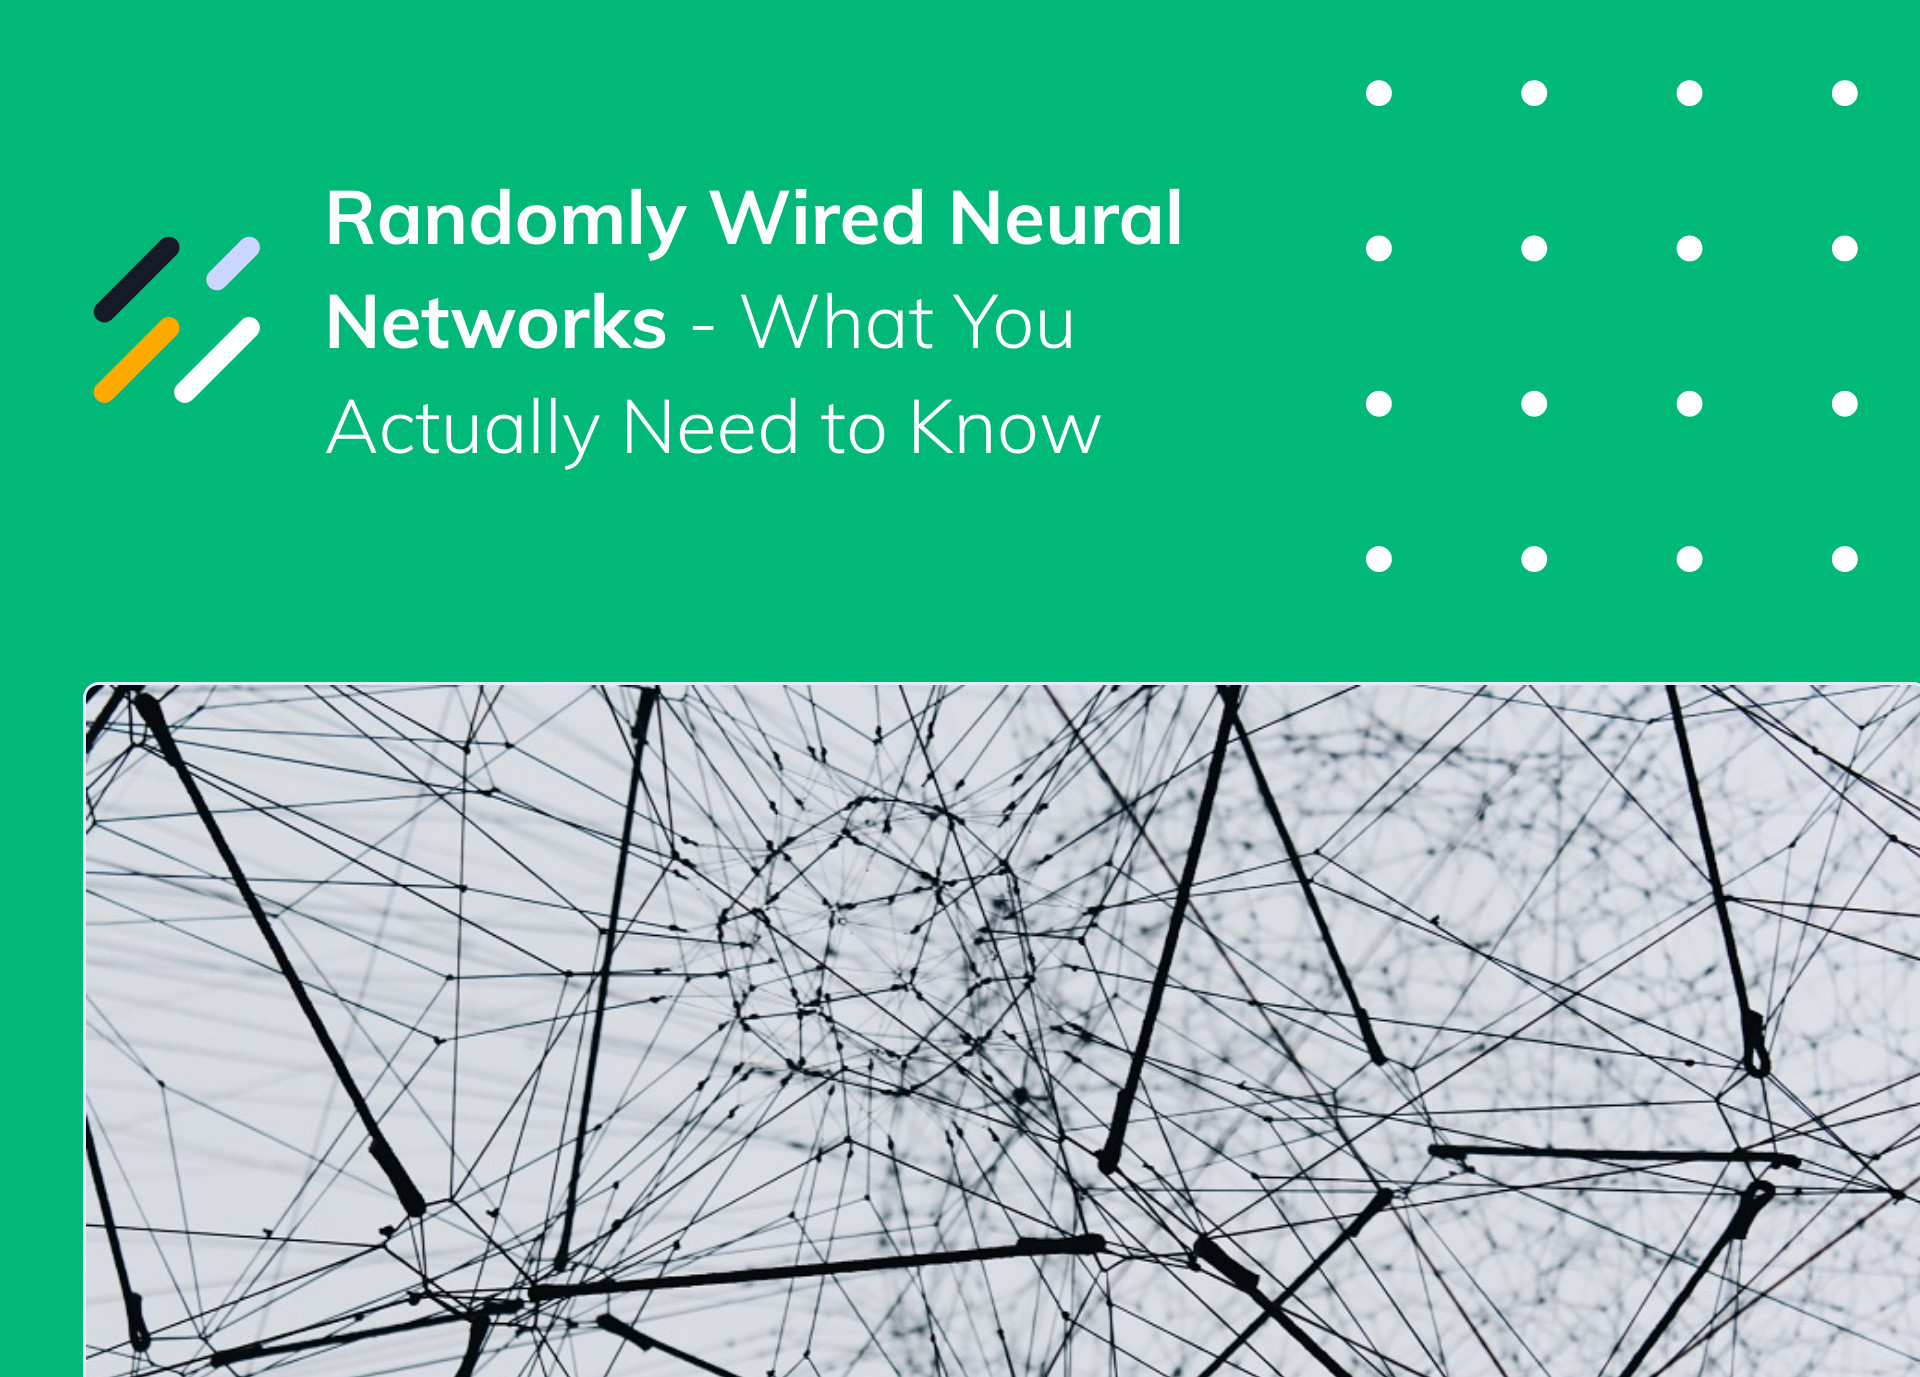 Randomly Wired Neural Networks – What You Actually Need to Know